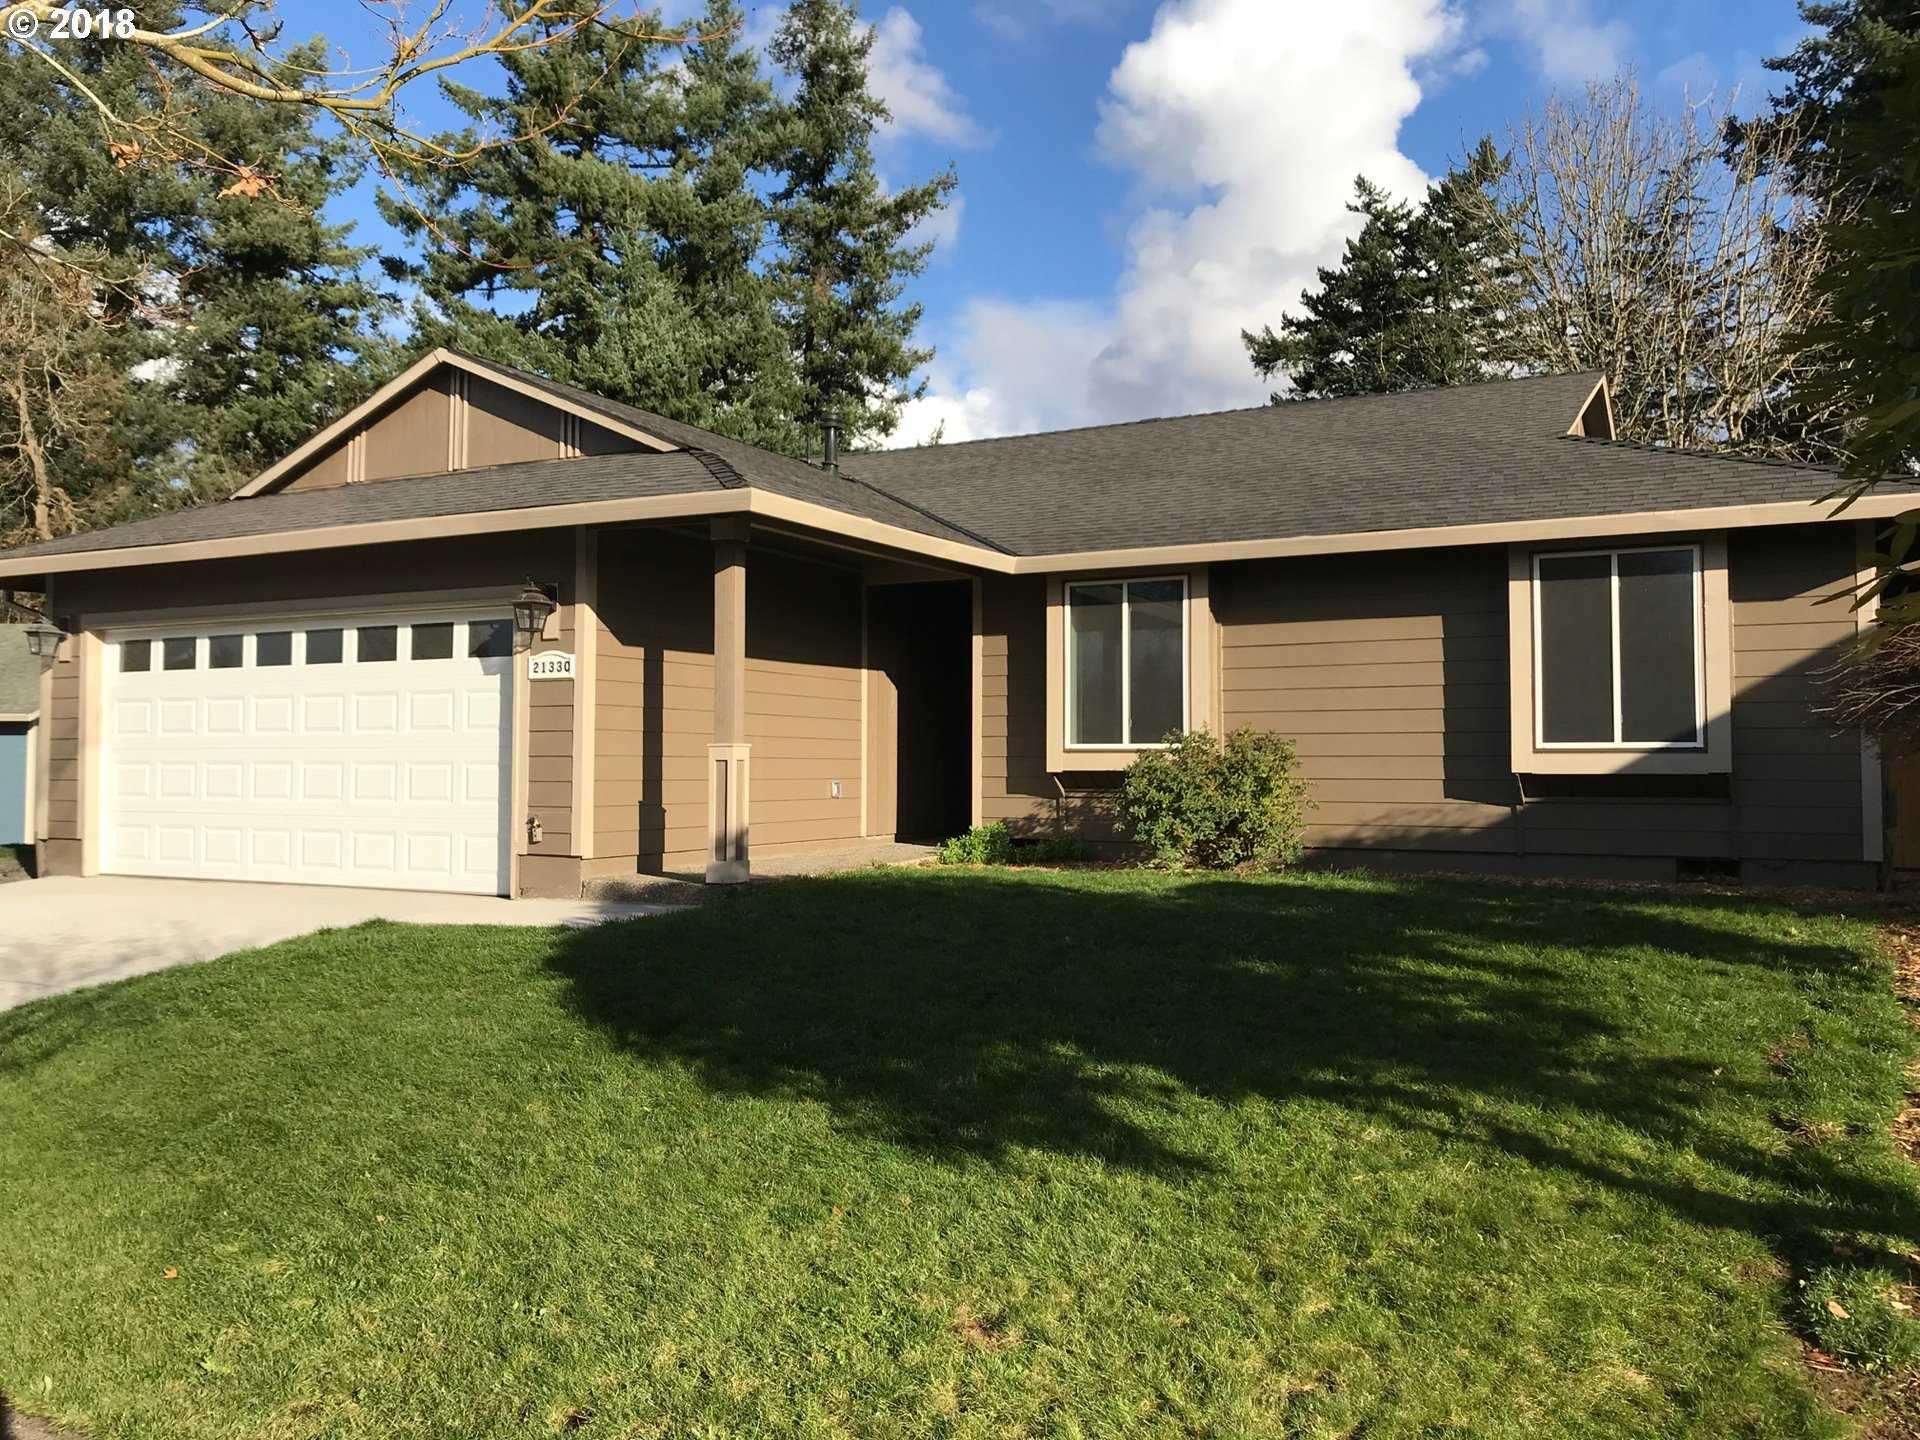 $327,500 - 3Br/2Ba -  for Sale in Picefull, Fairview